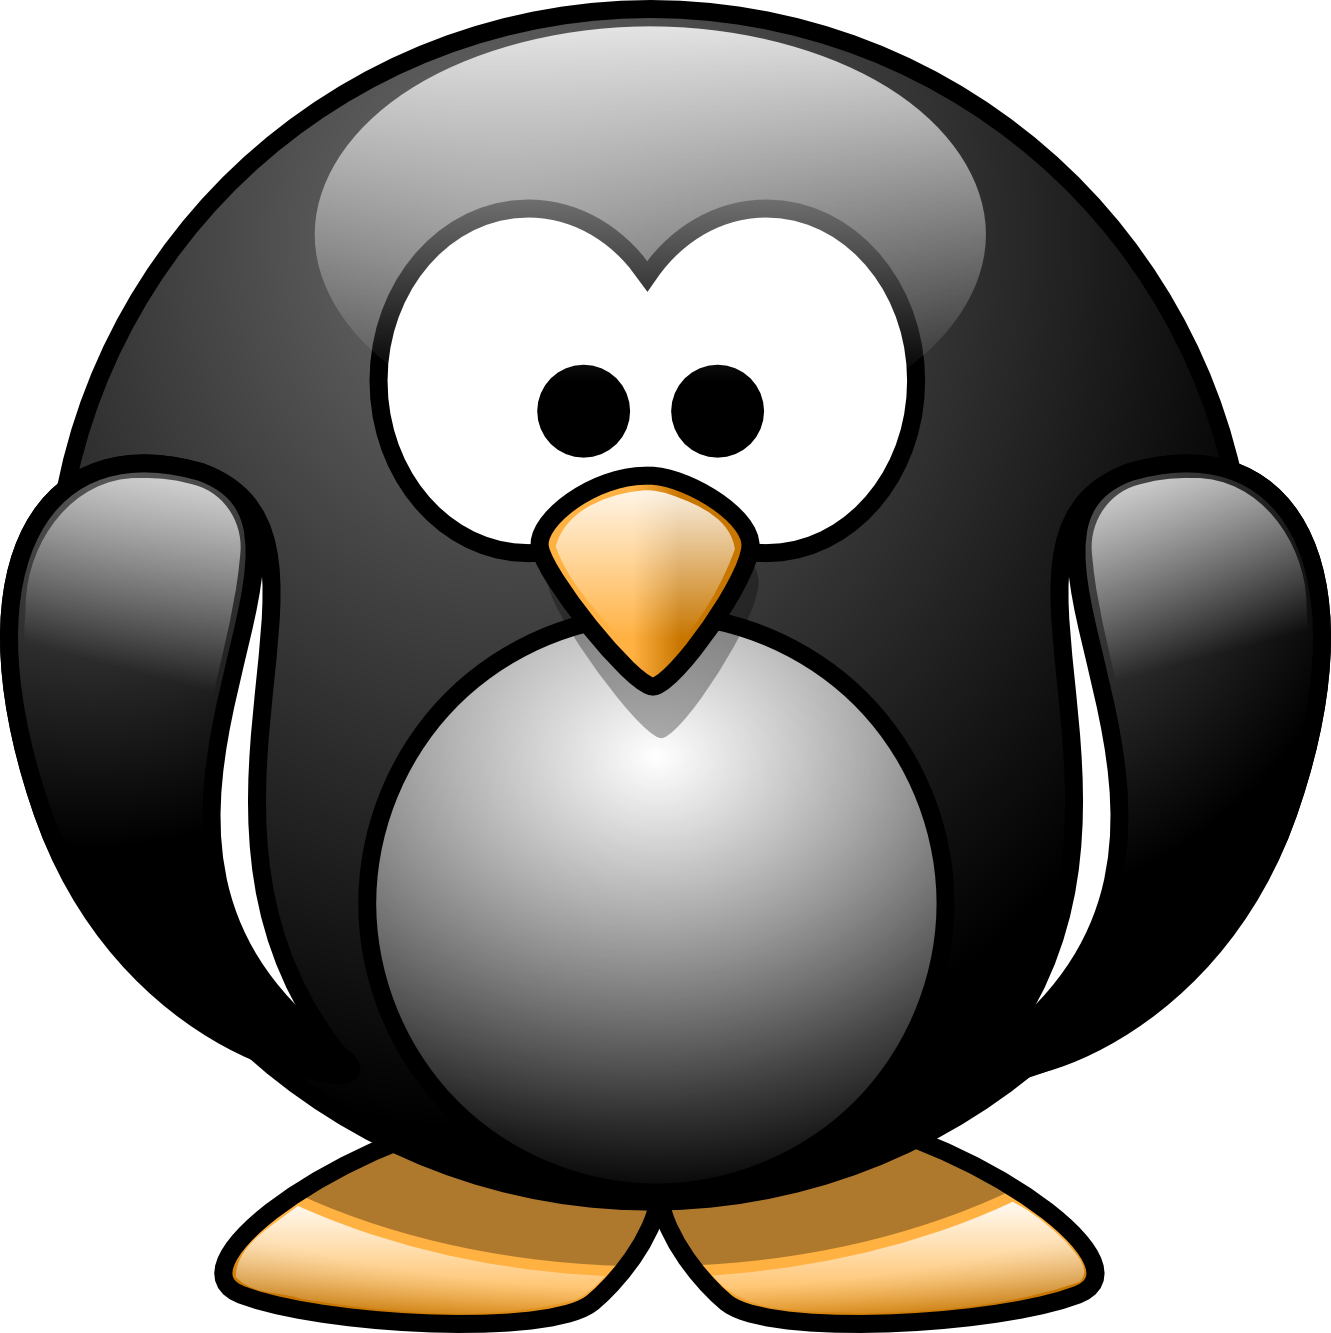 22 cartoon penguins images free cliparts that you can download to you ...